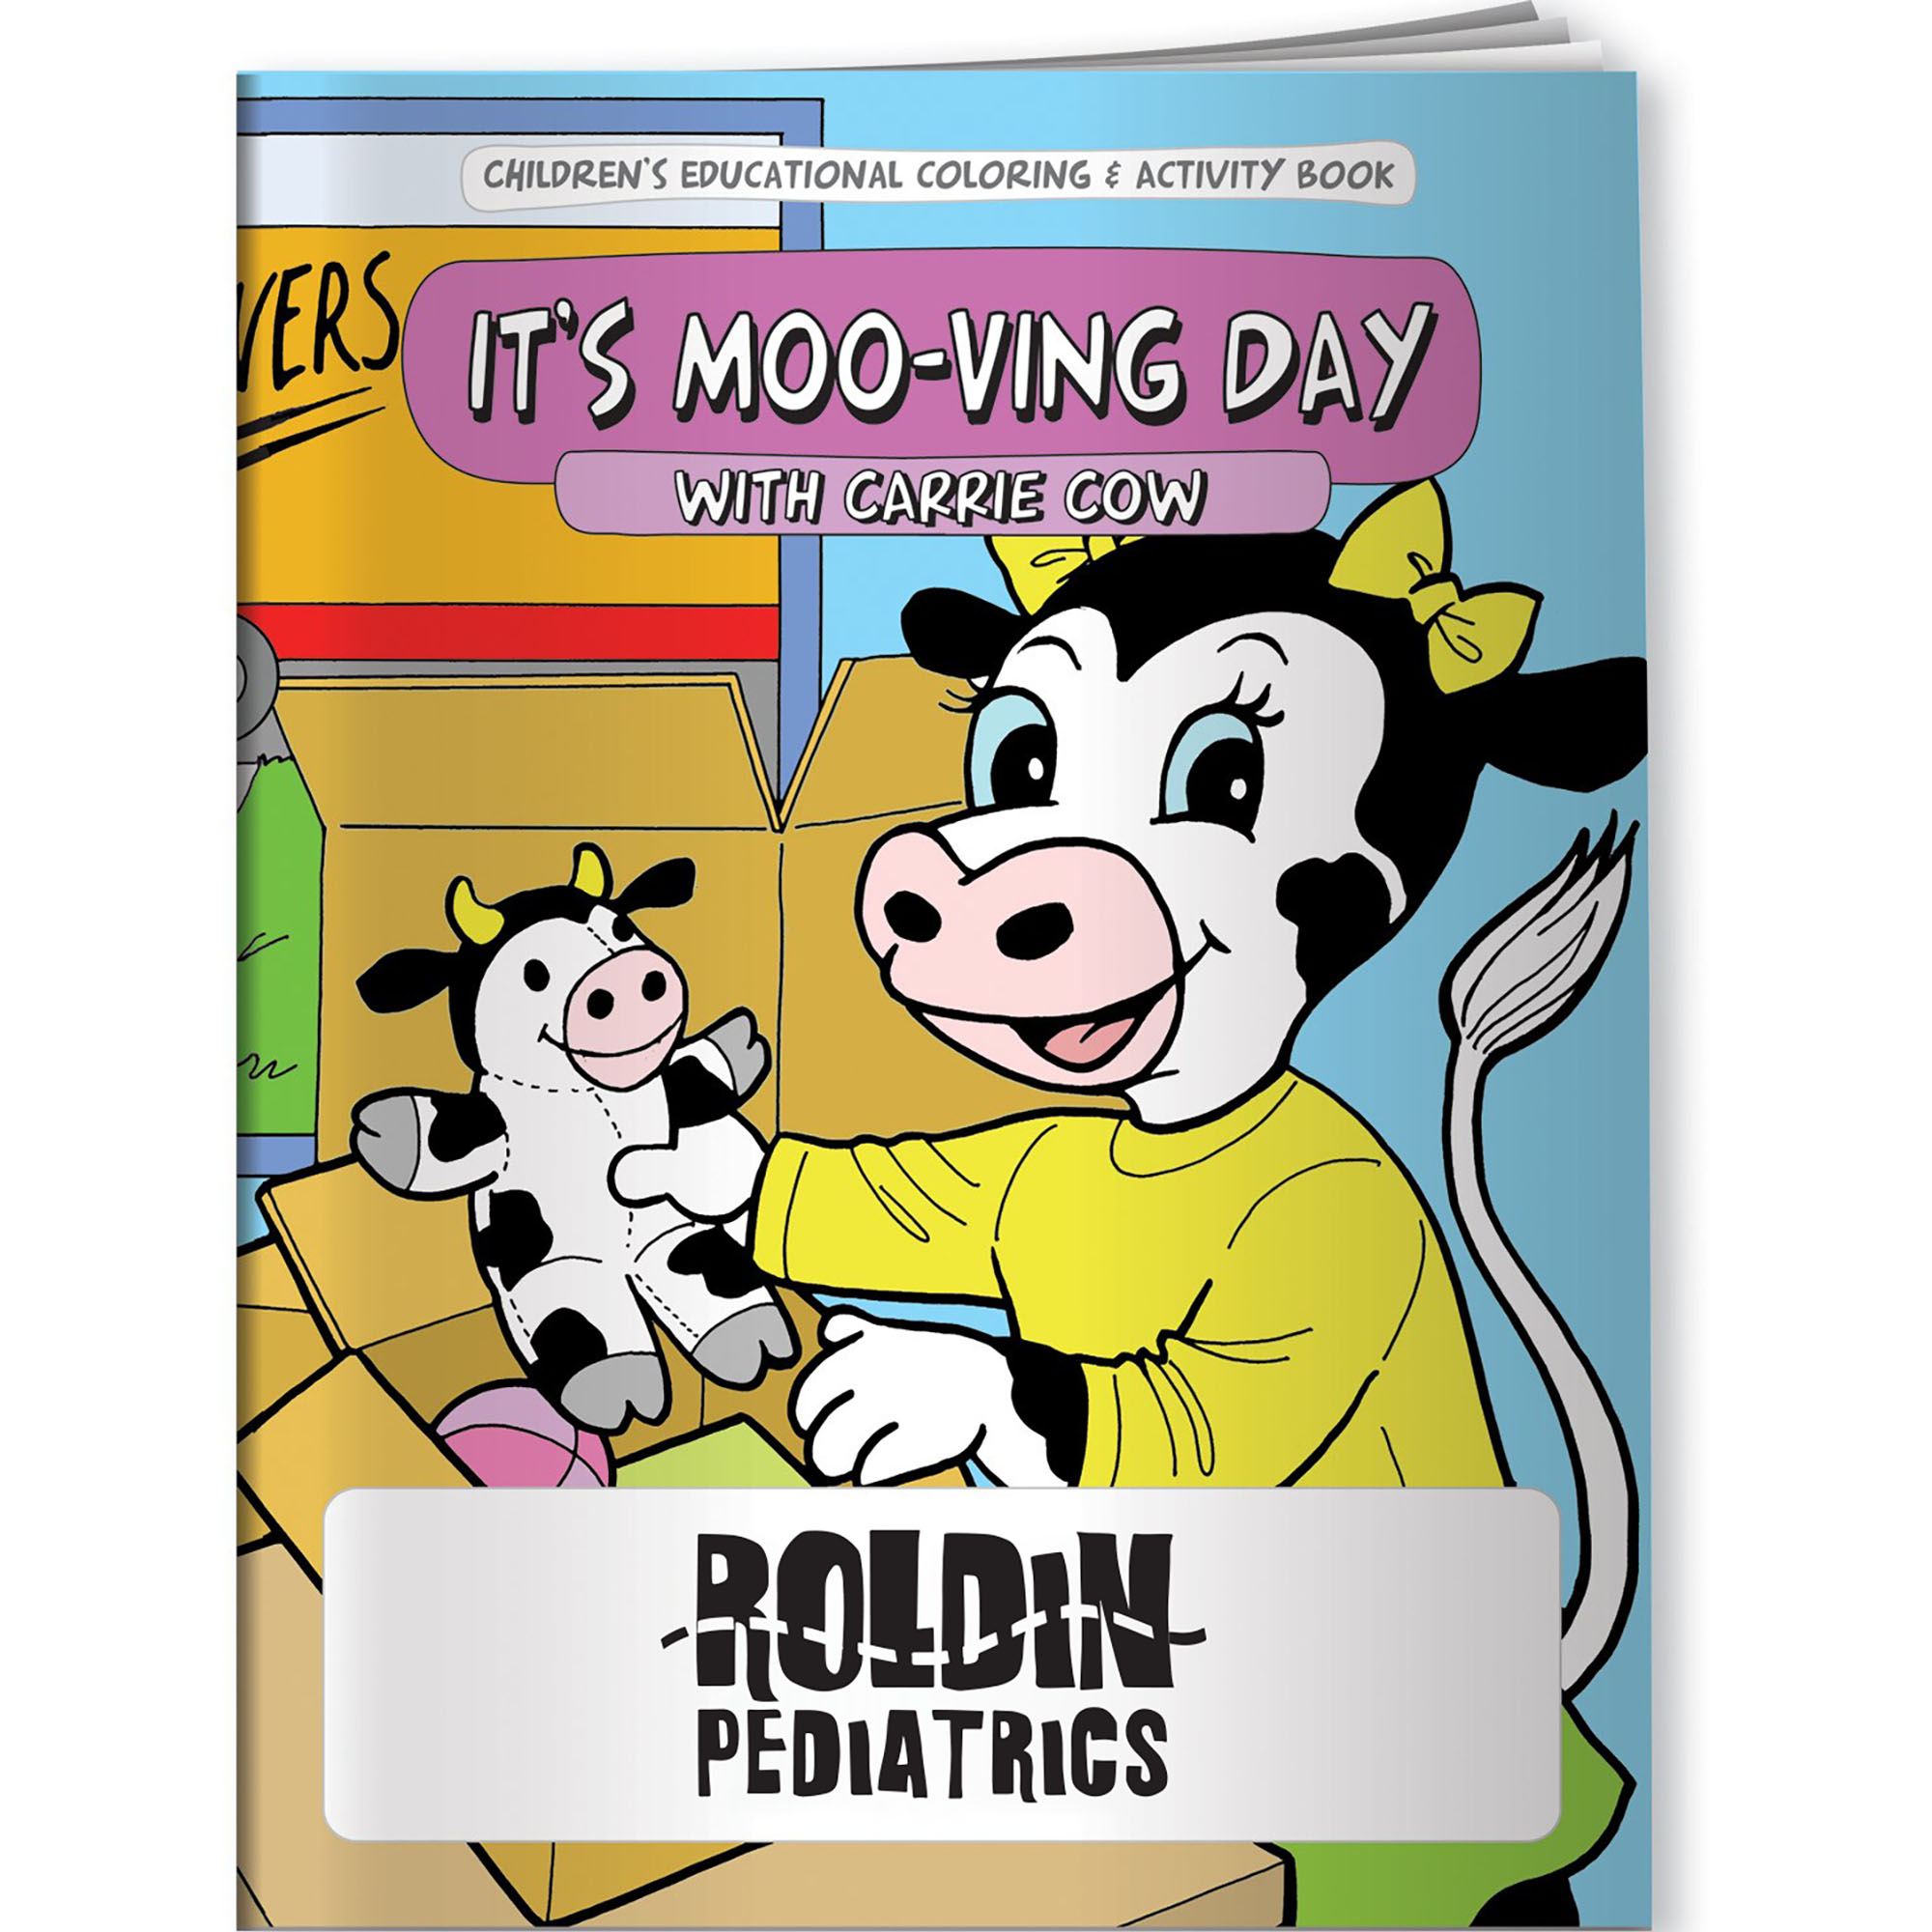 It's Moo-ving Day with Carrie Cow Coloring & Activity Book